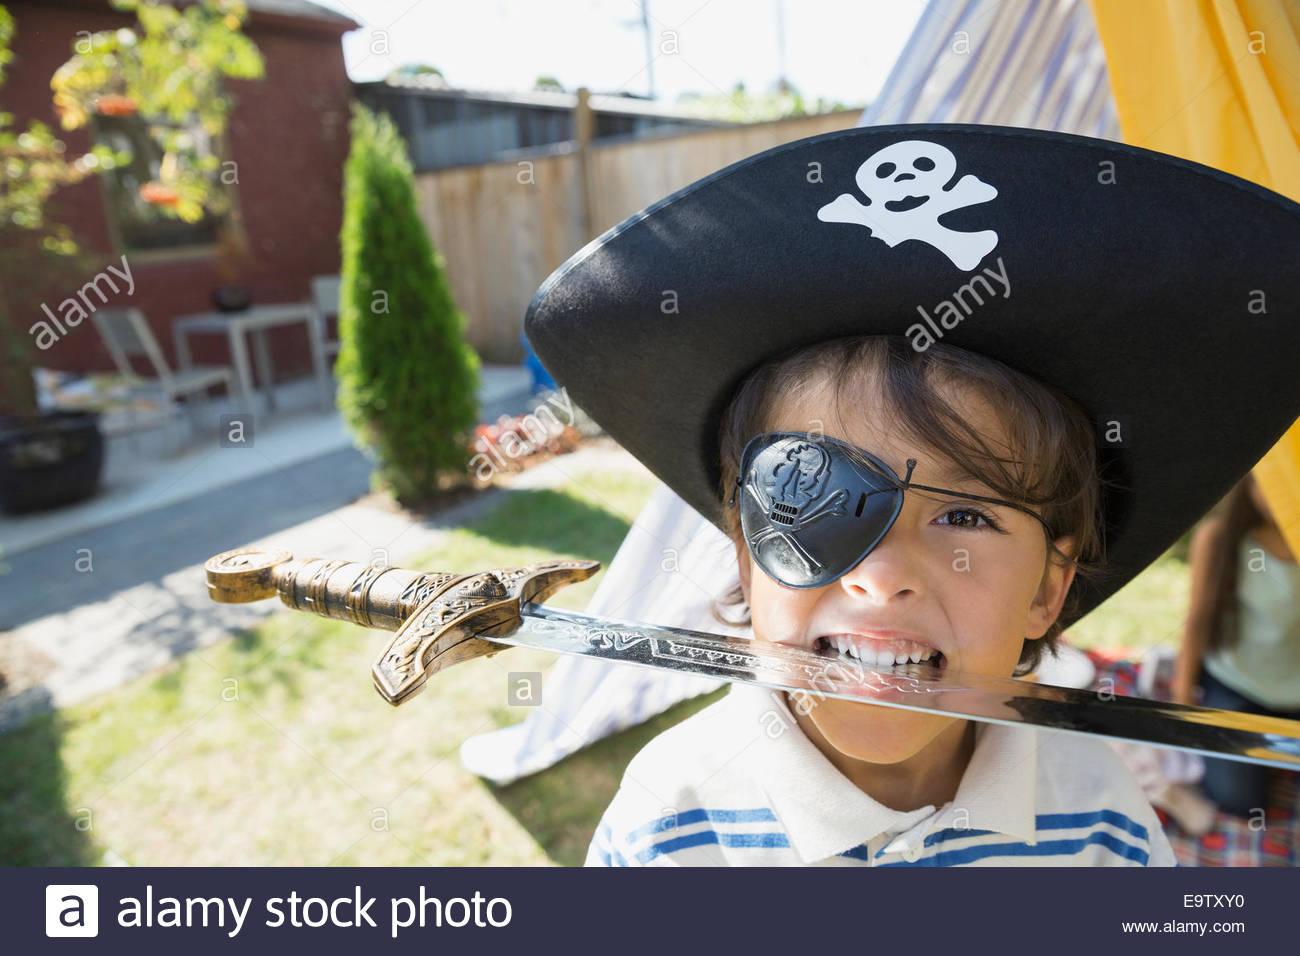 Portrait of boy in pirate hat biting sword Photo Stock